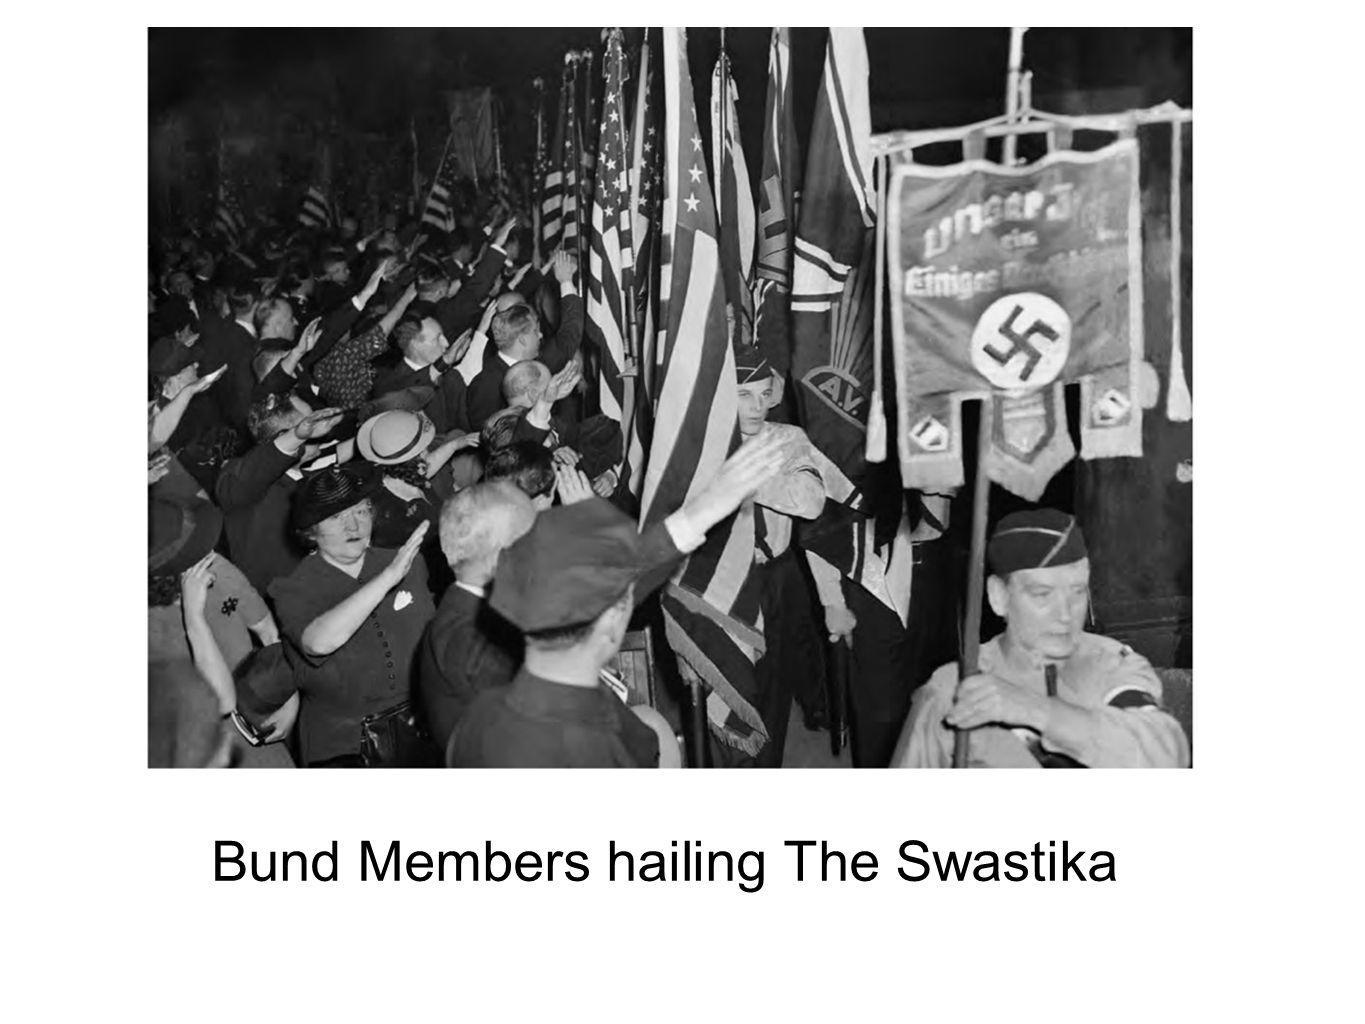 Bund Members hailing The Swastika